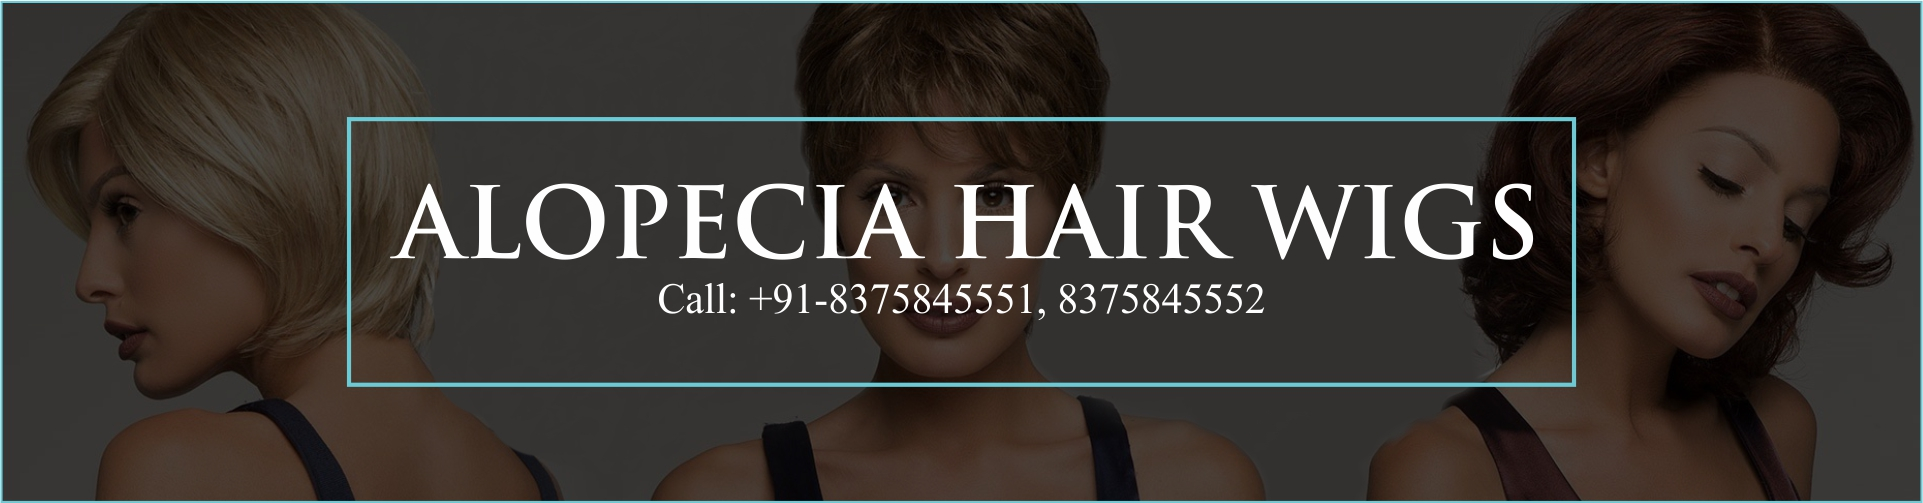 Alopecia Hair Wigs in Delhi - PHC Hair Clinic